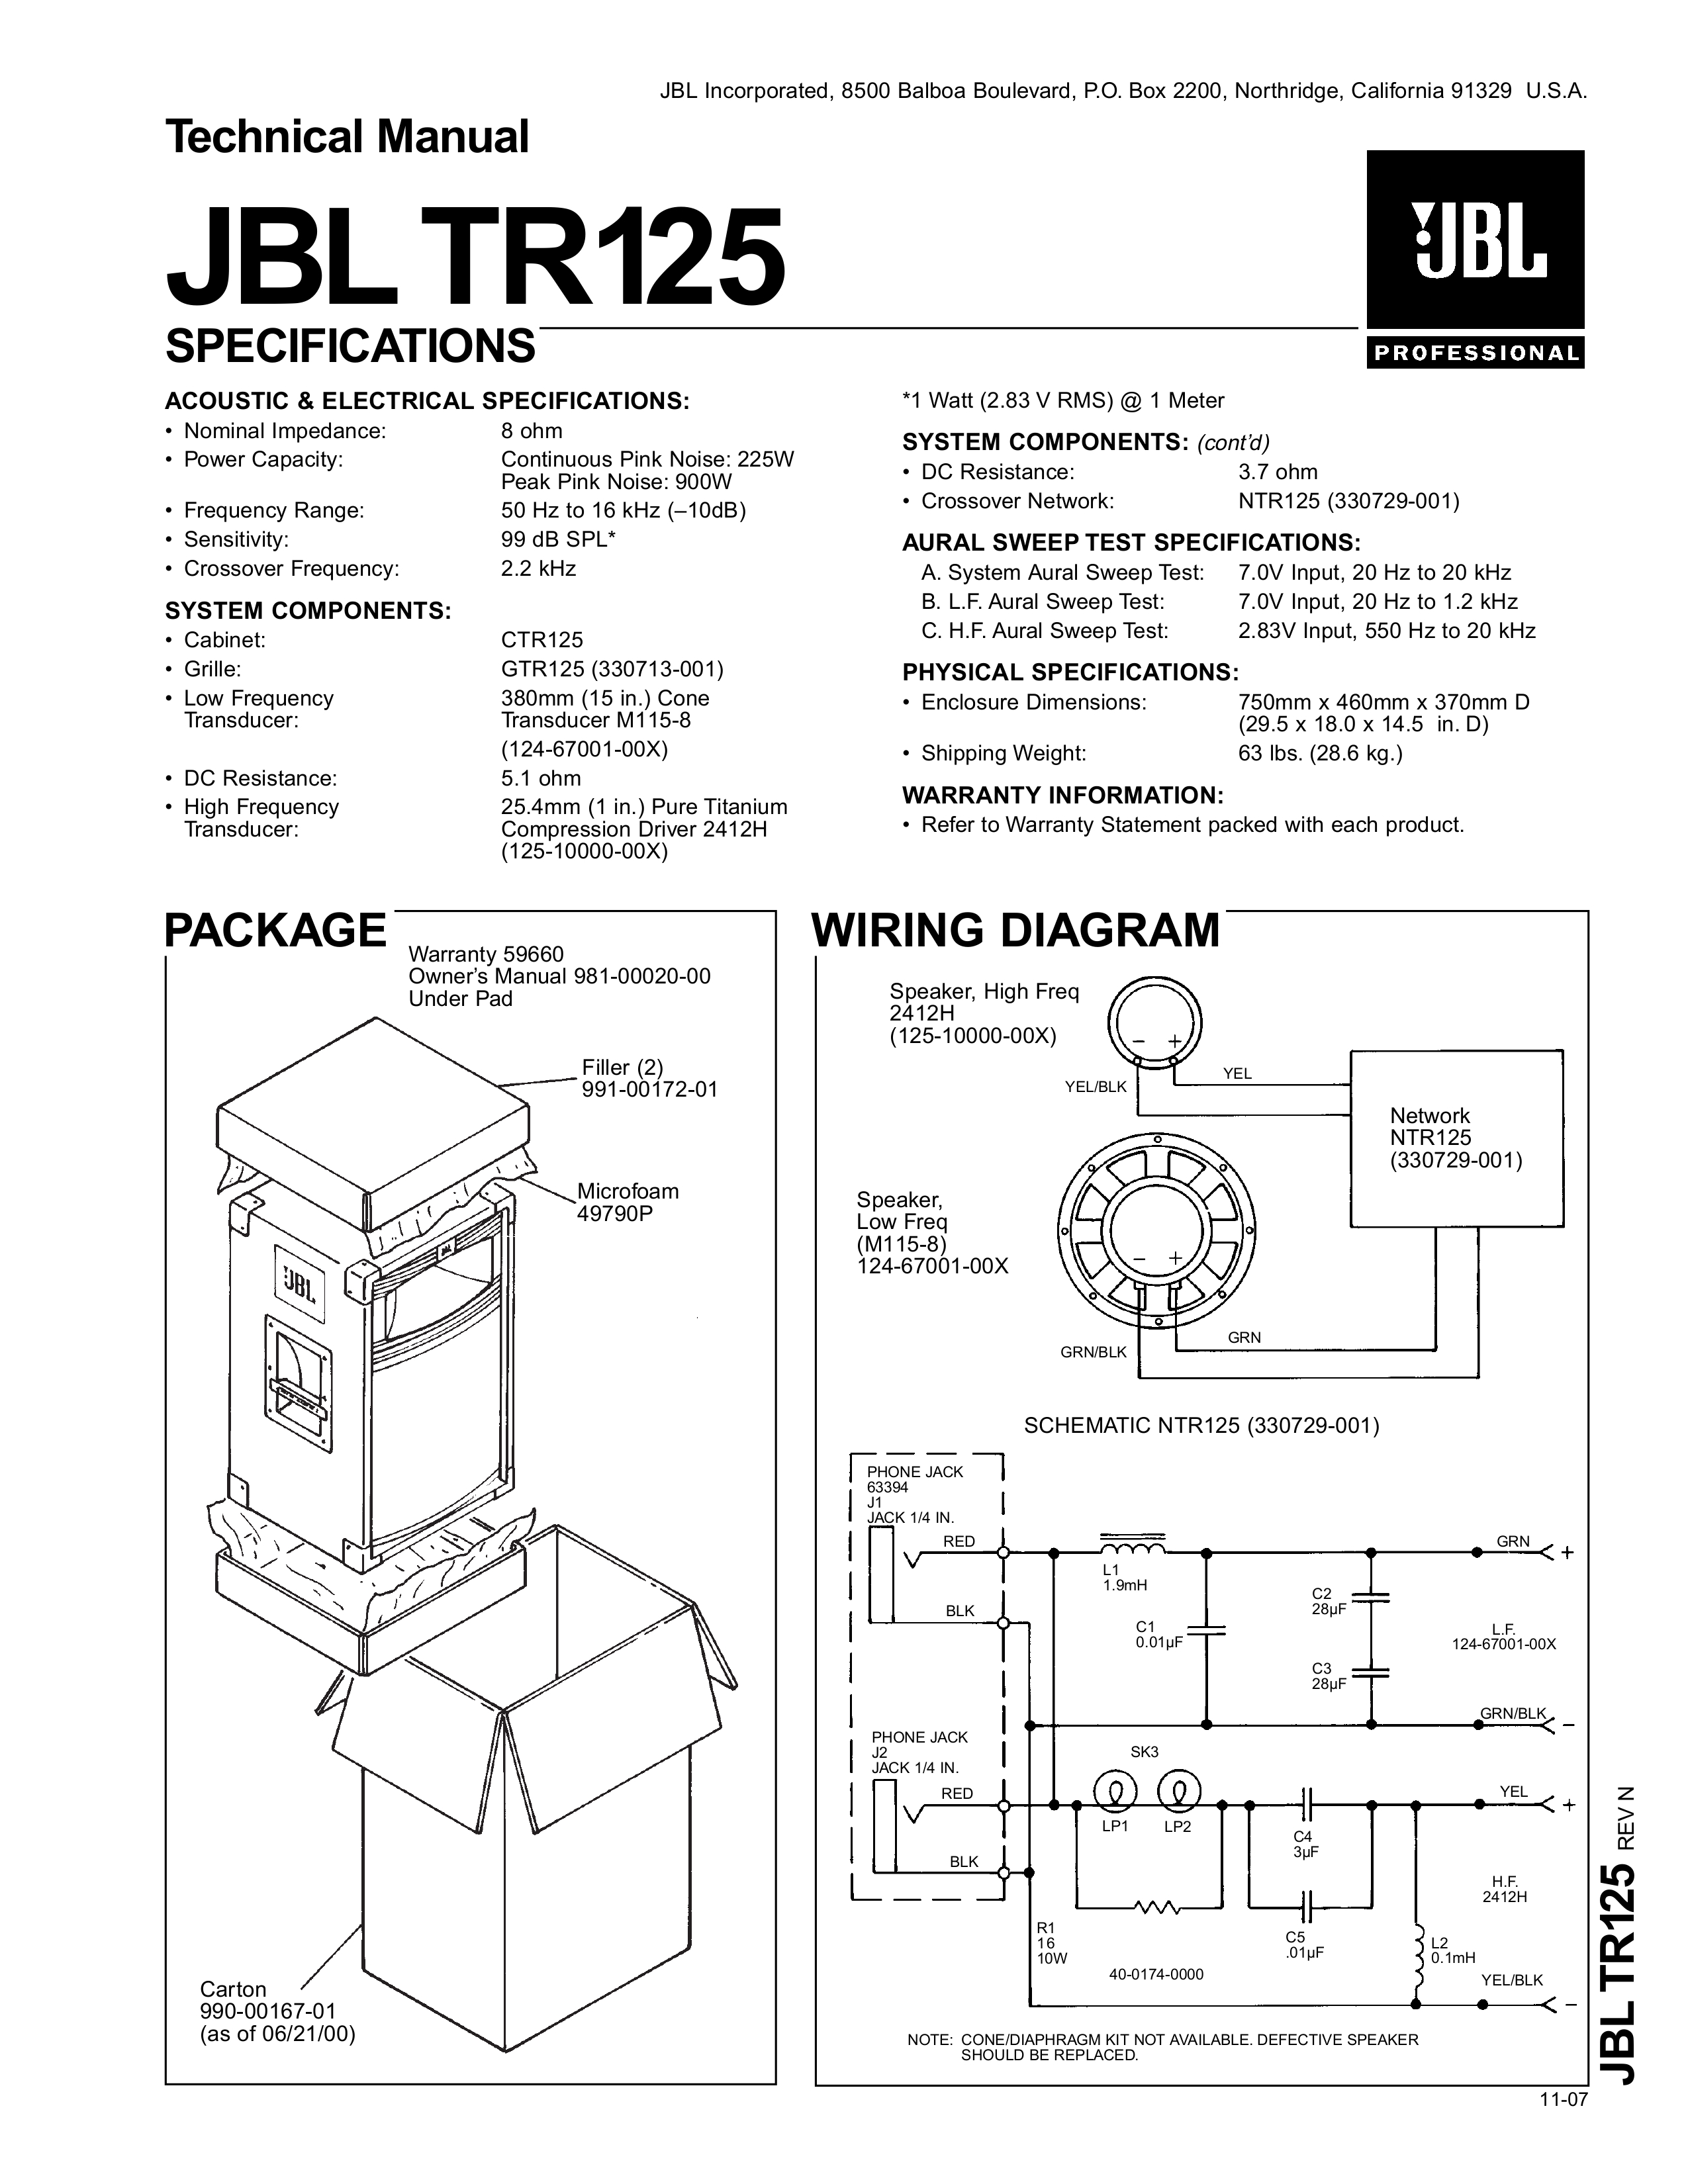 Wiring Diagram Jbl Crossover Network 01